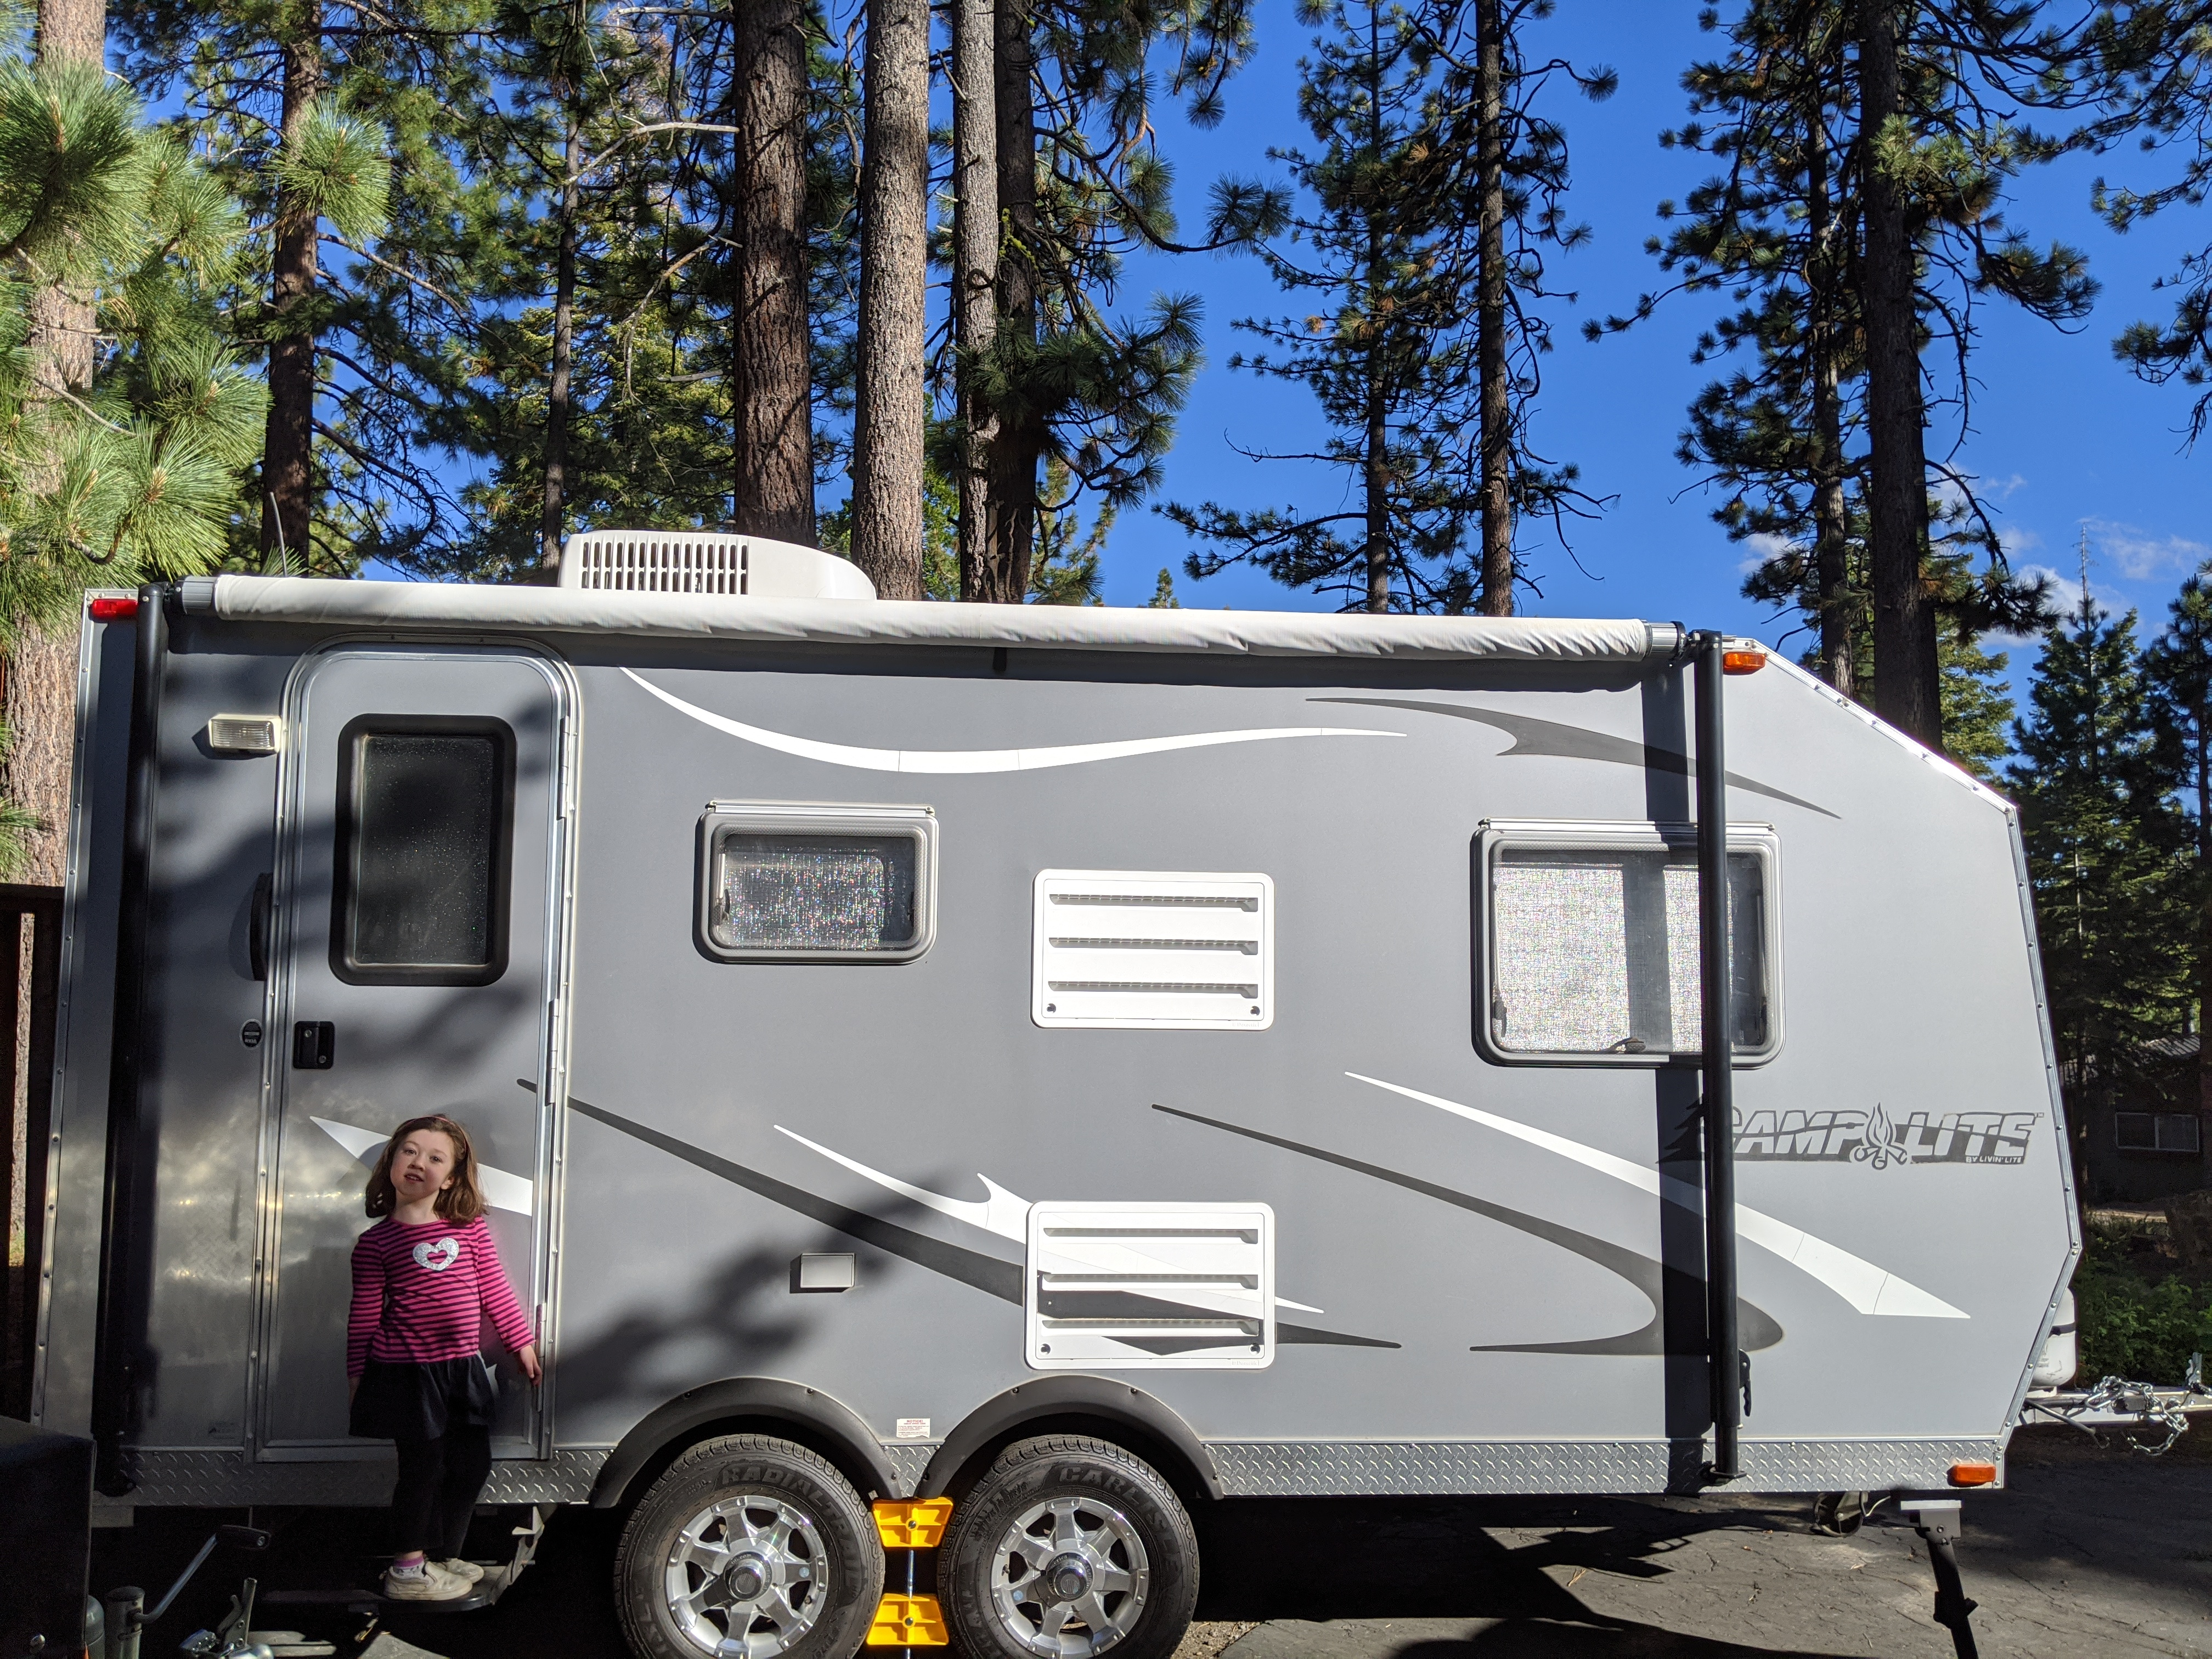 Side View with awning. Livin' Lite Camplite 2012